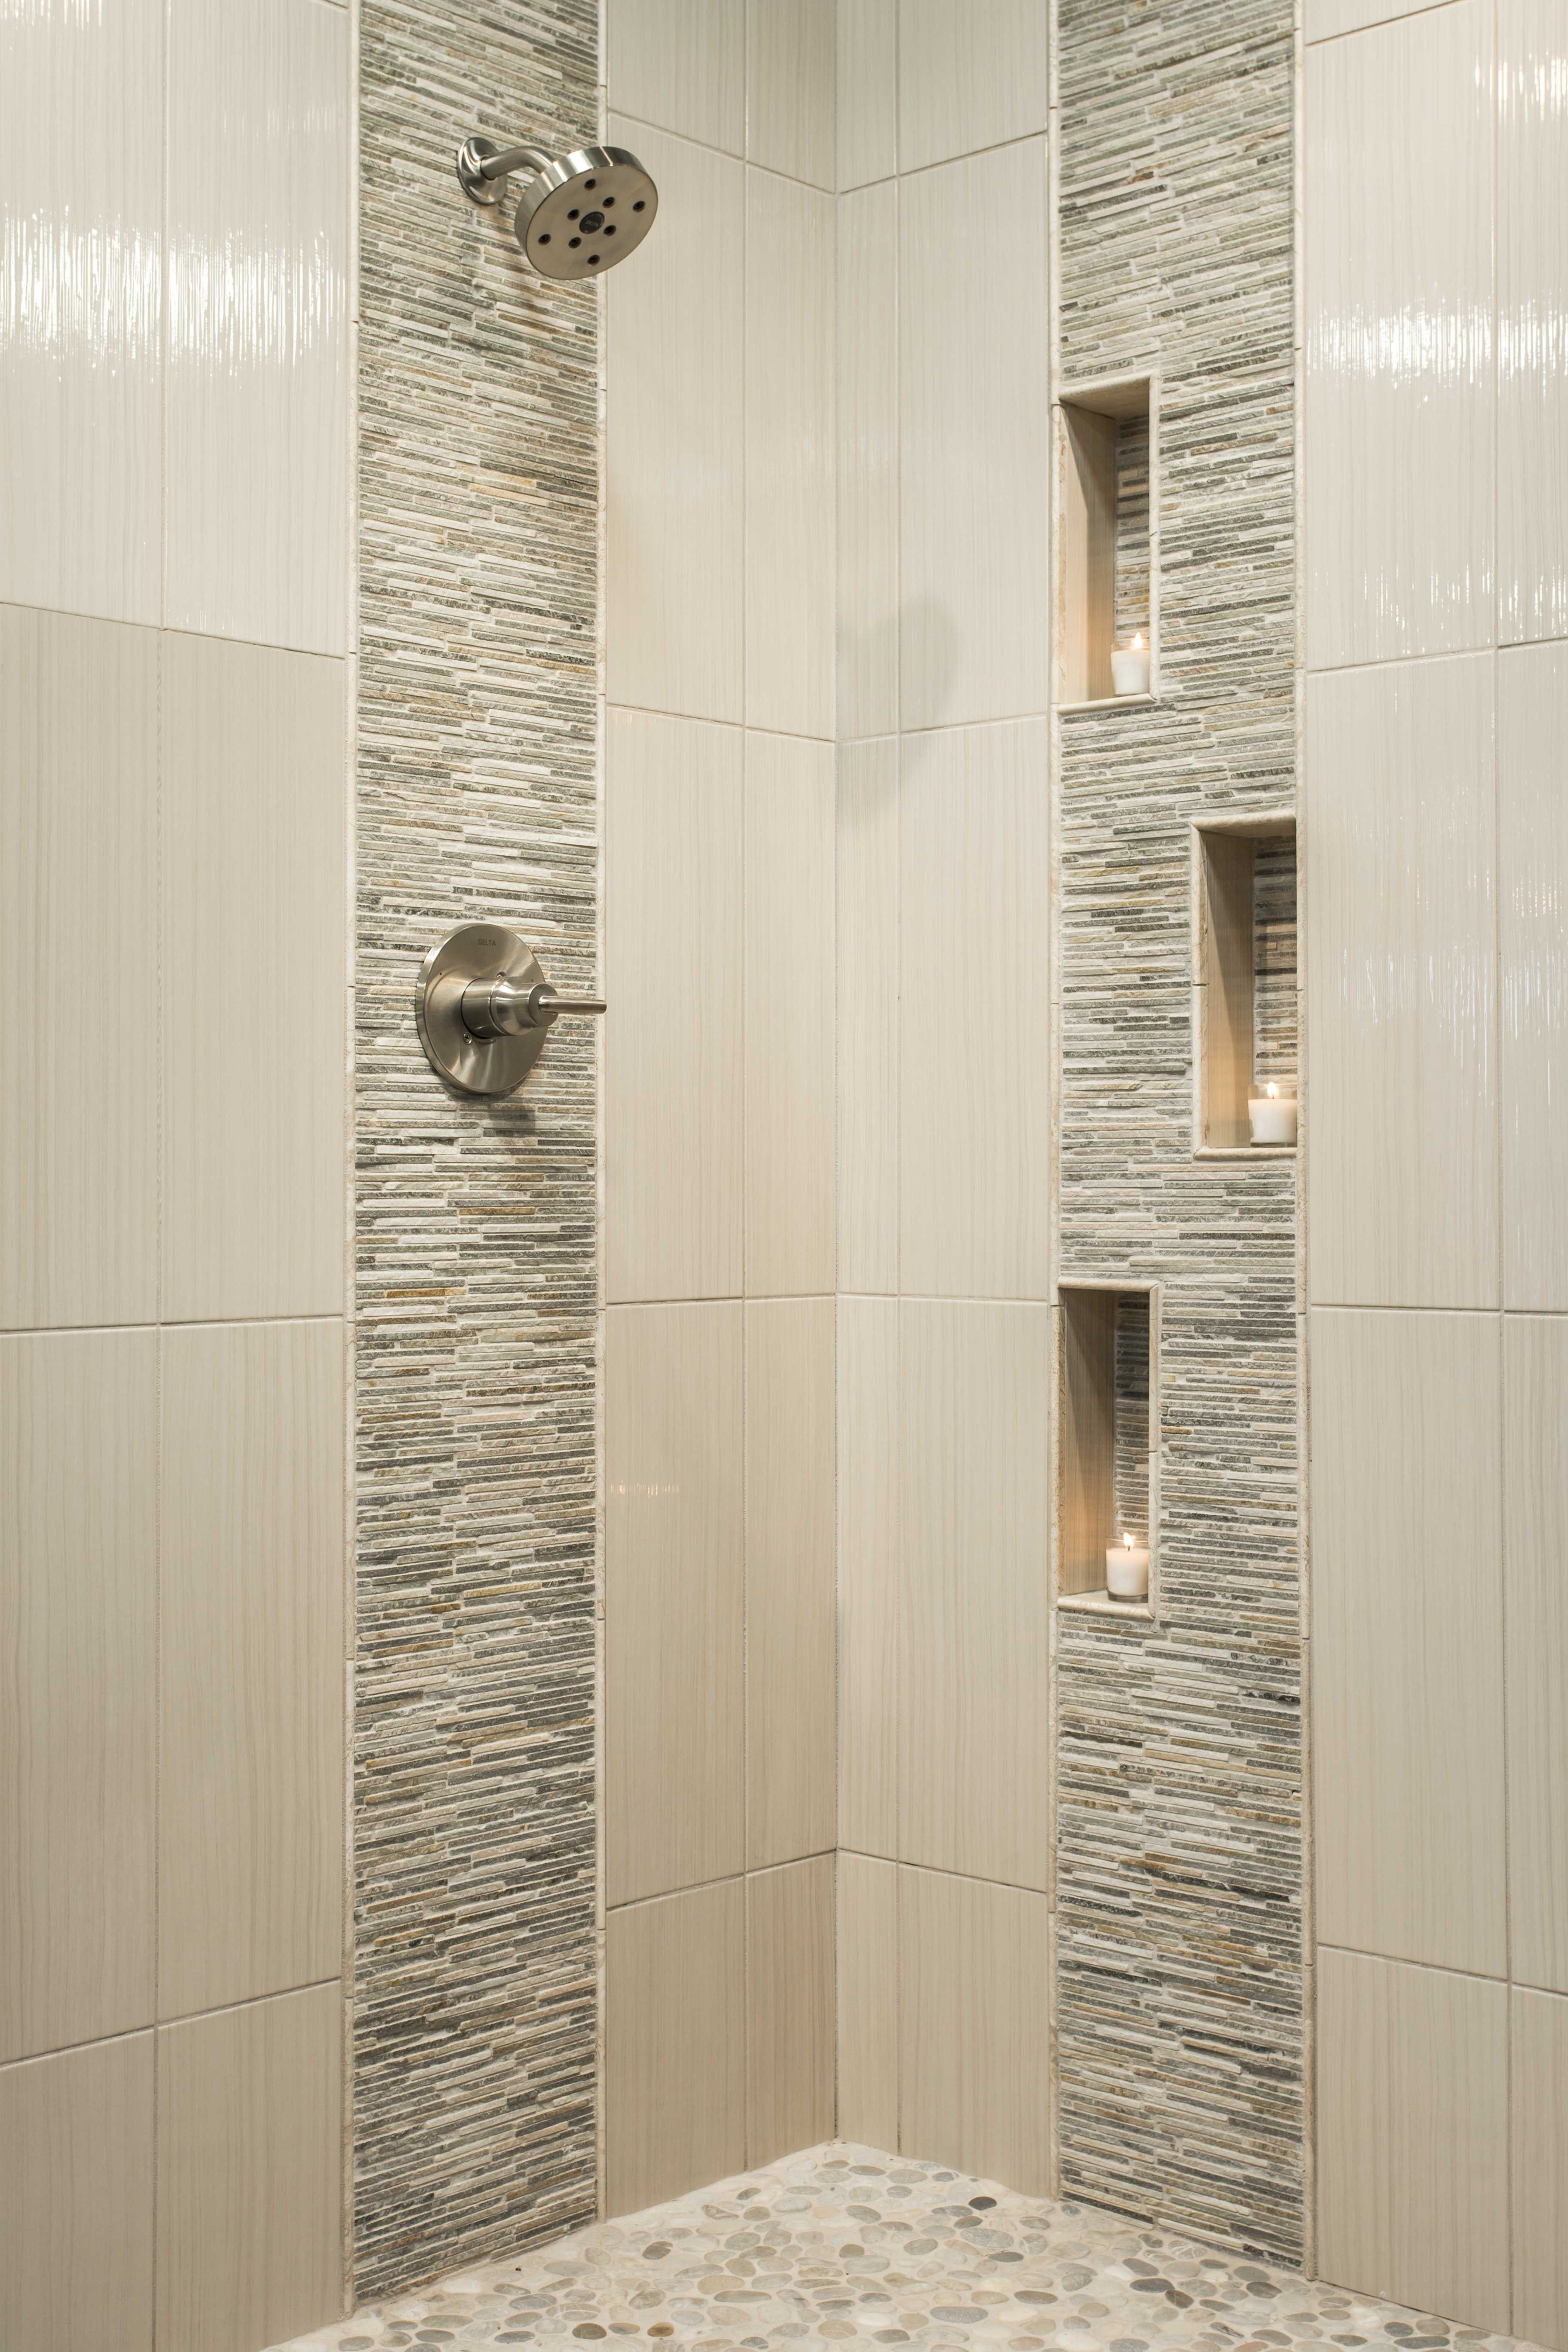 Bathroom shower tile    Future home in 2019